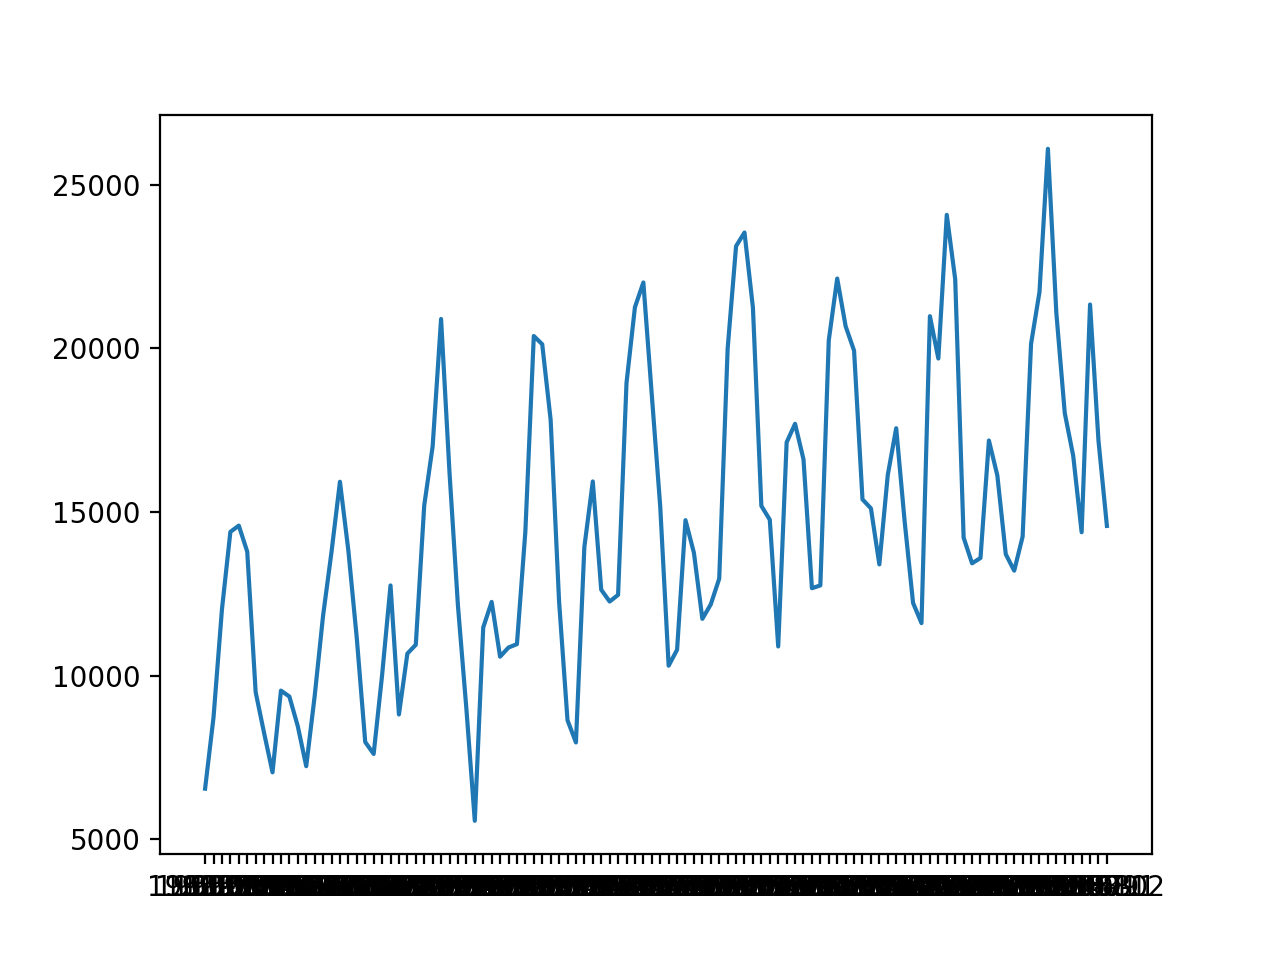 Line Plot of Monthly Car Sales